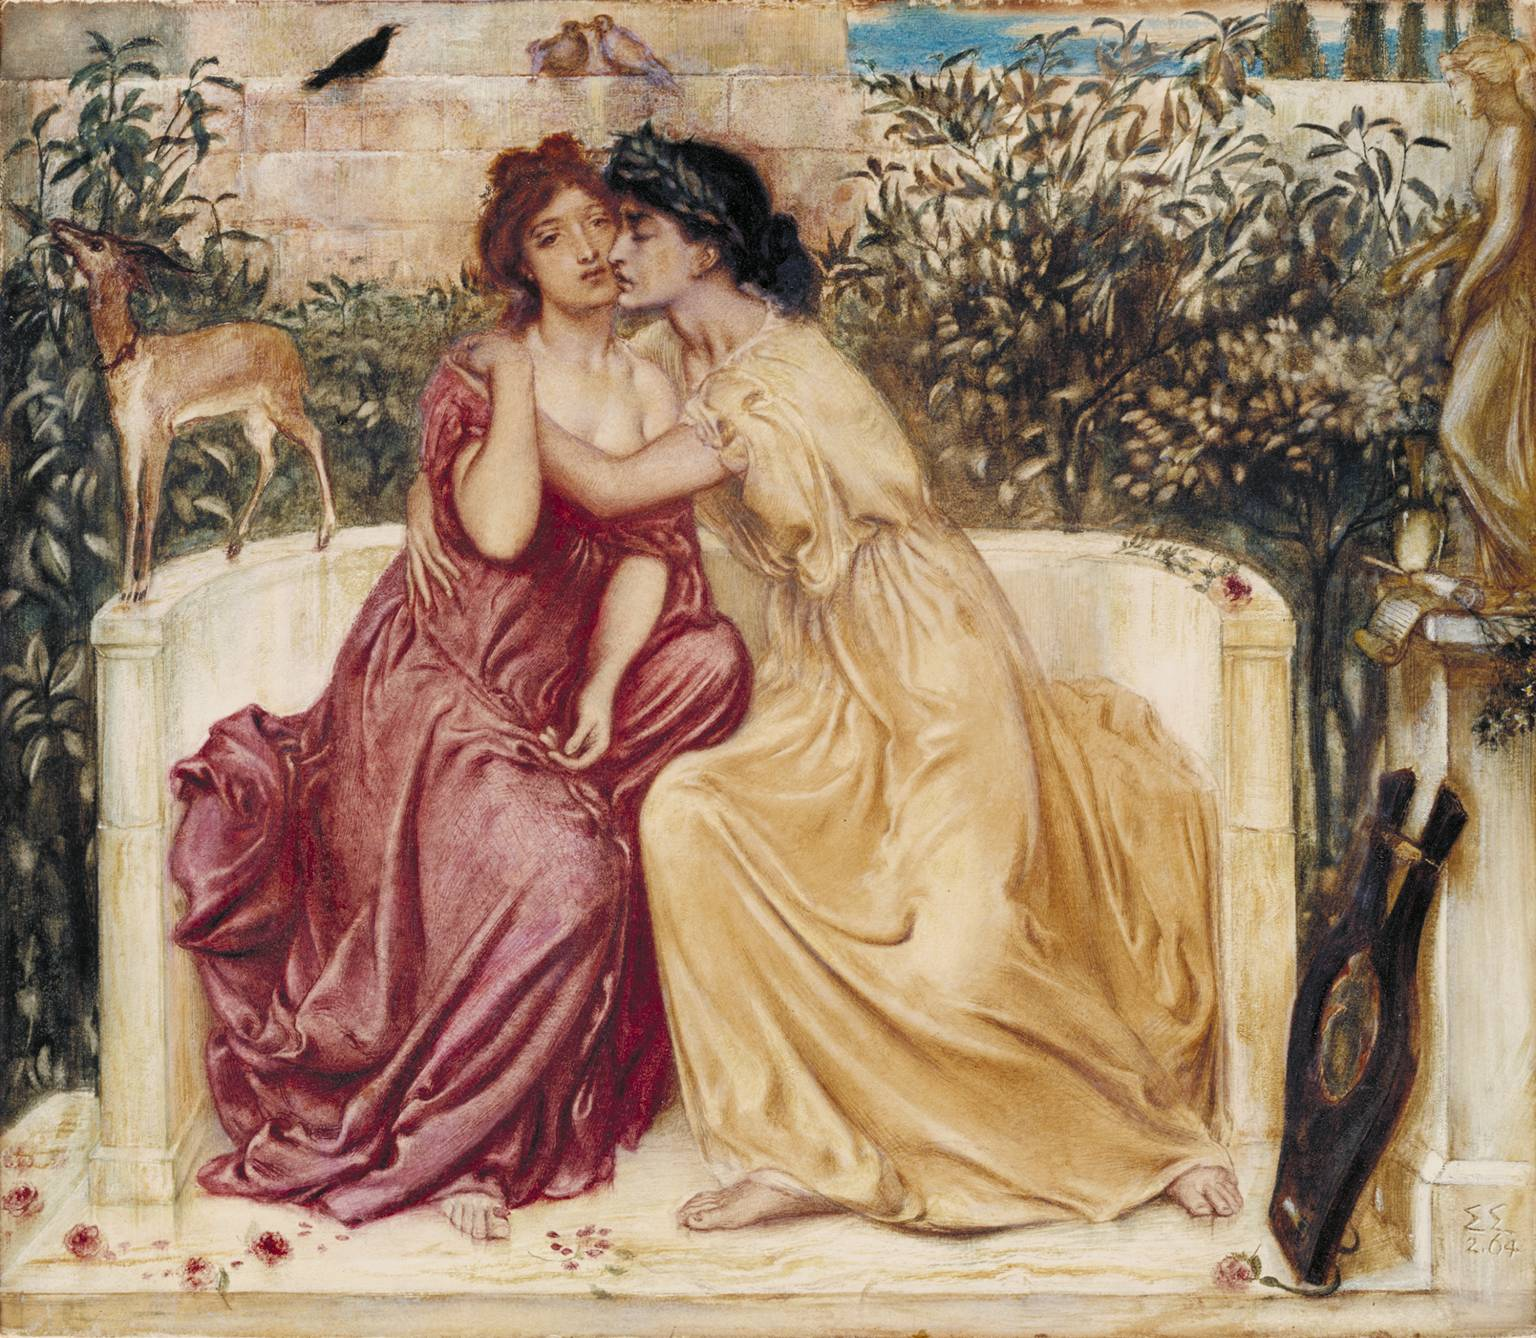 Sappho and Erinna in a Garden at Mytilene 1864 by Simeon Solomon 1840-1905